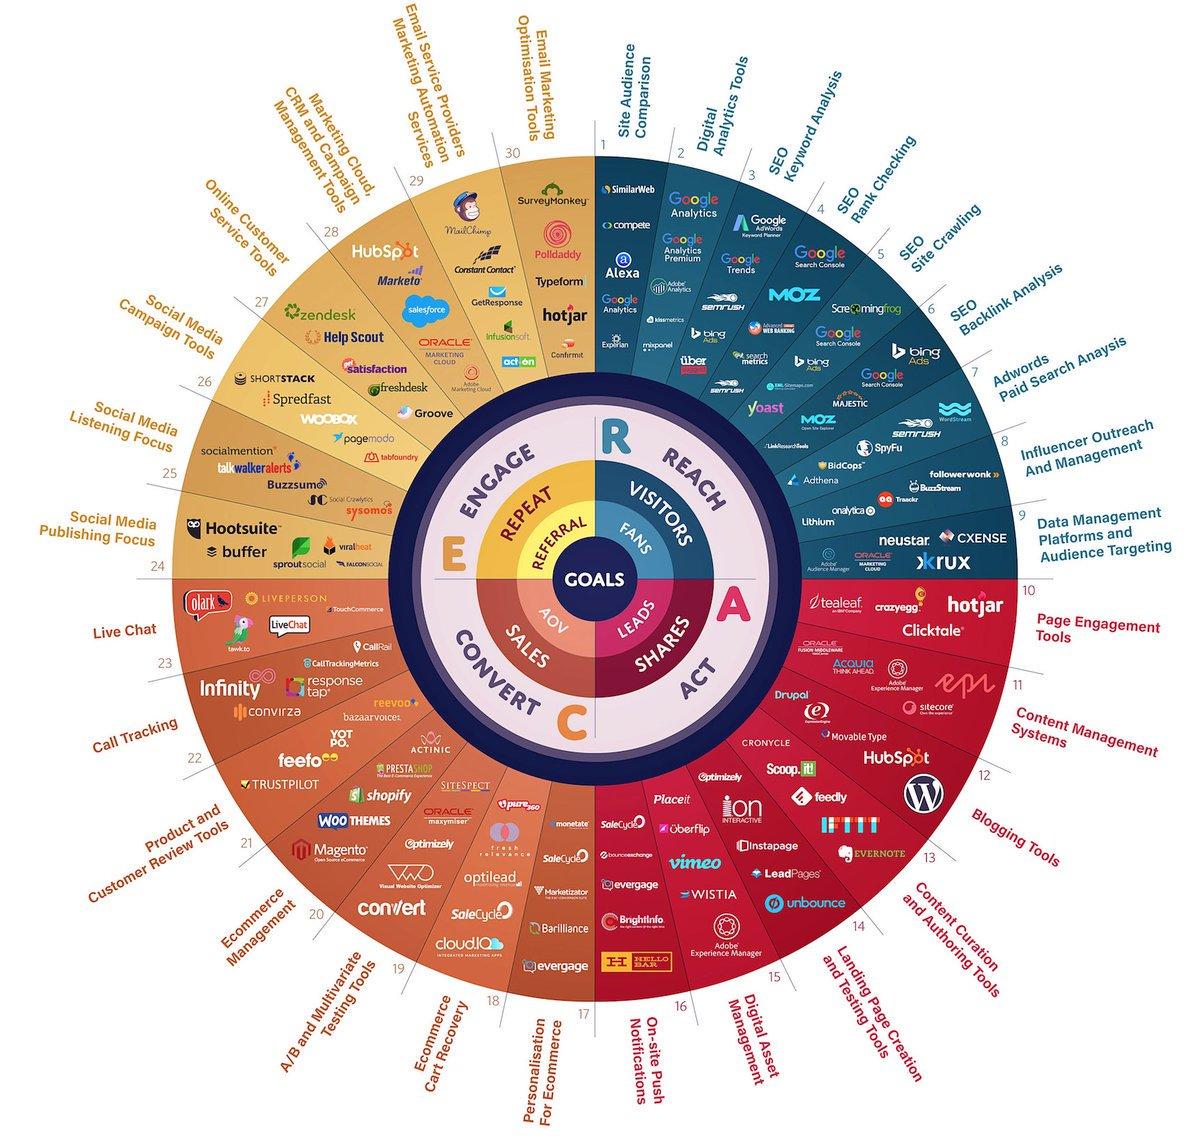 150 Digital #Marketing Tools for 2018 #BizTips #SMB #CMO #DigitalMarketing #IoT #GrowthHacking #contentmarketing #Tips #SMM #SEO #SEM #startups #social #socialmedia #twitter #BloggingTips #webdev #UX #sales #Innovation #Tech #Marketing #Internet #InternetMarketing #Productivity https://t.co/XivB6YPz1v